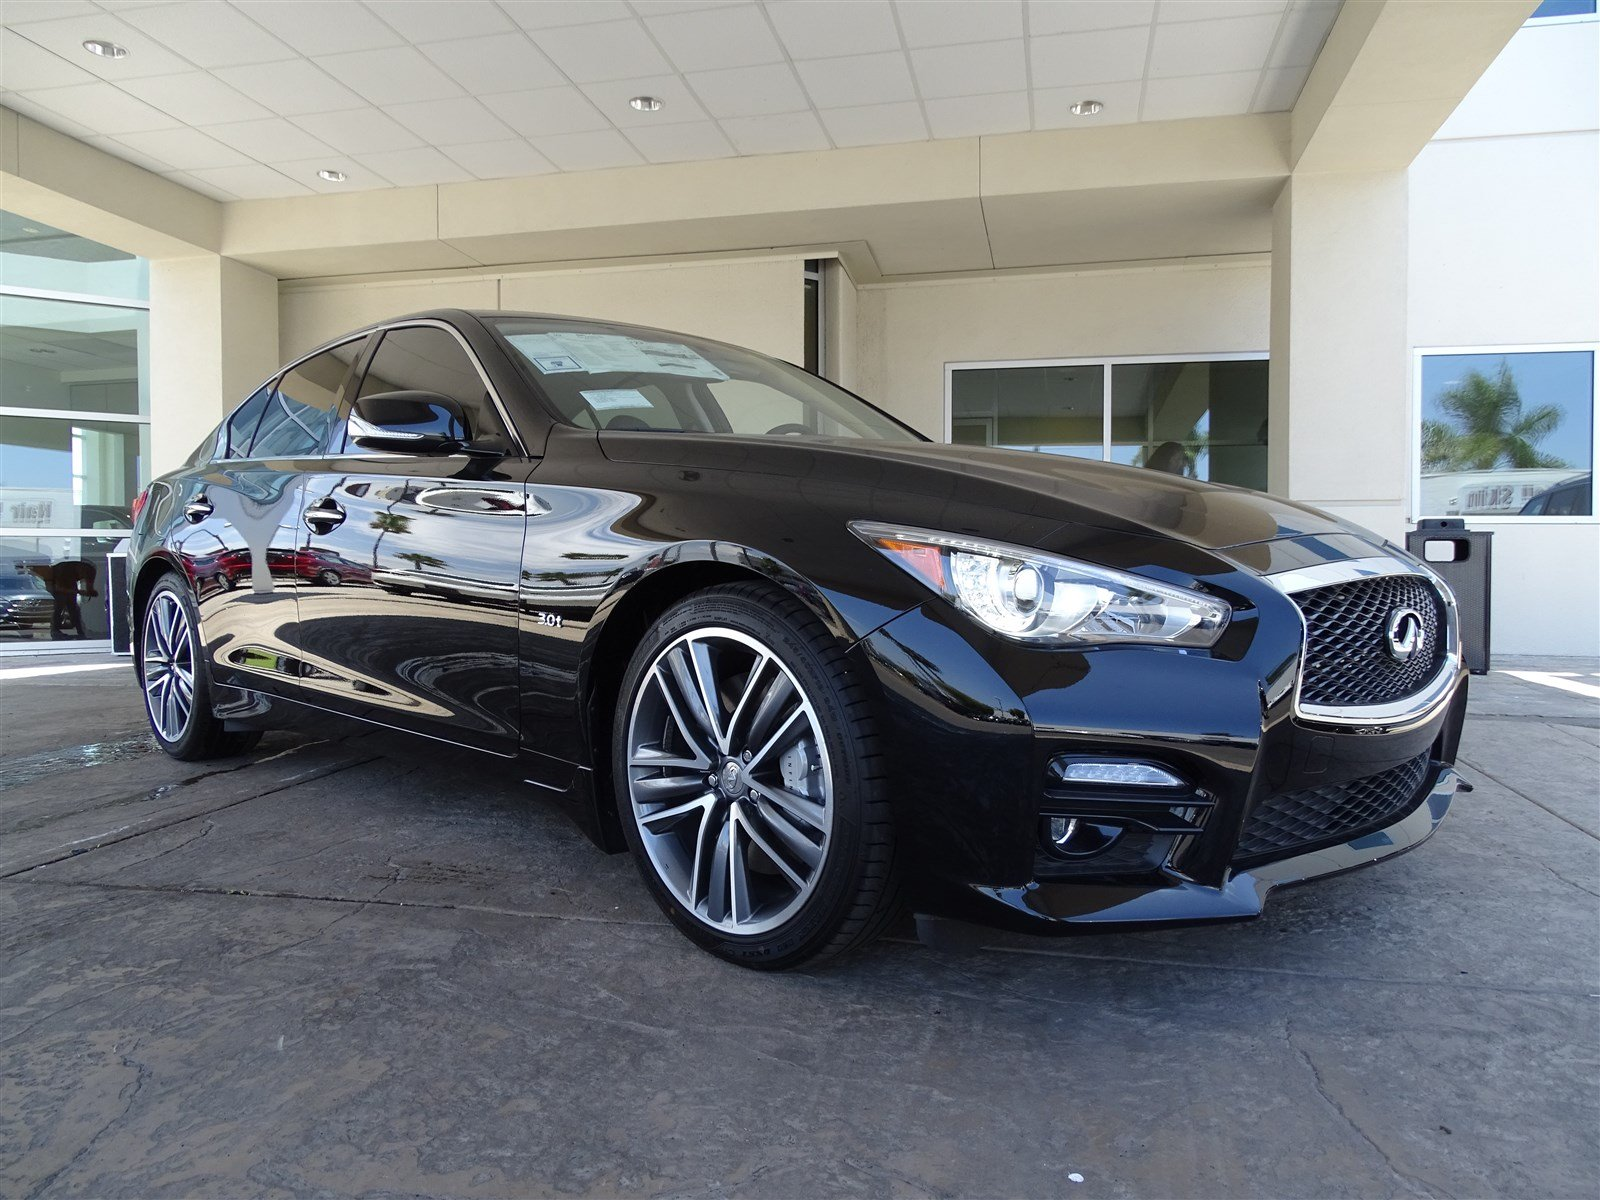 new 2017 infiniti q50 sport 4dr car in san diego 170816 kearny mesa infiniti. Black Bedroom Furniture Sets. Home Design Ideas